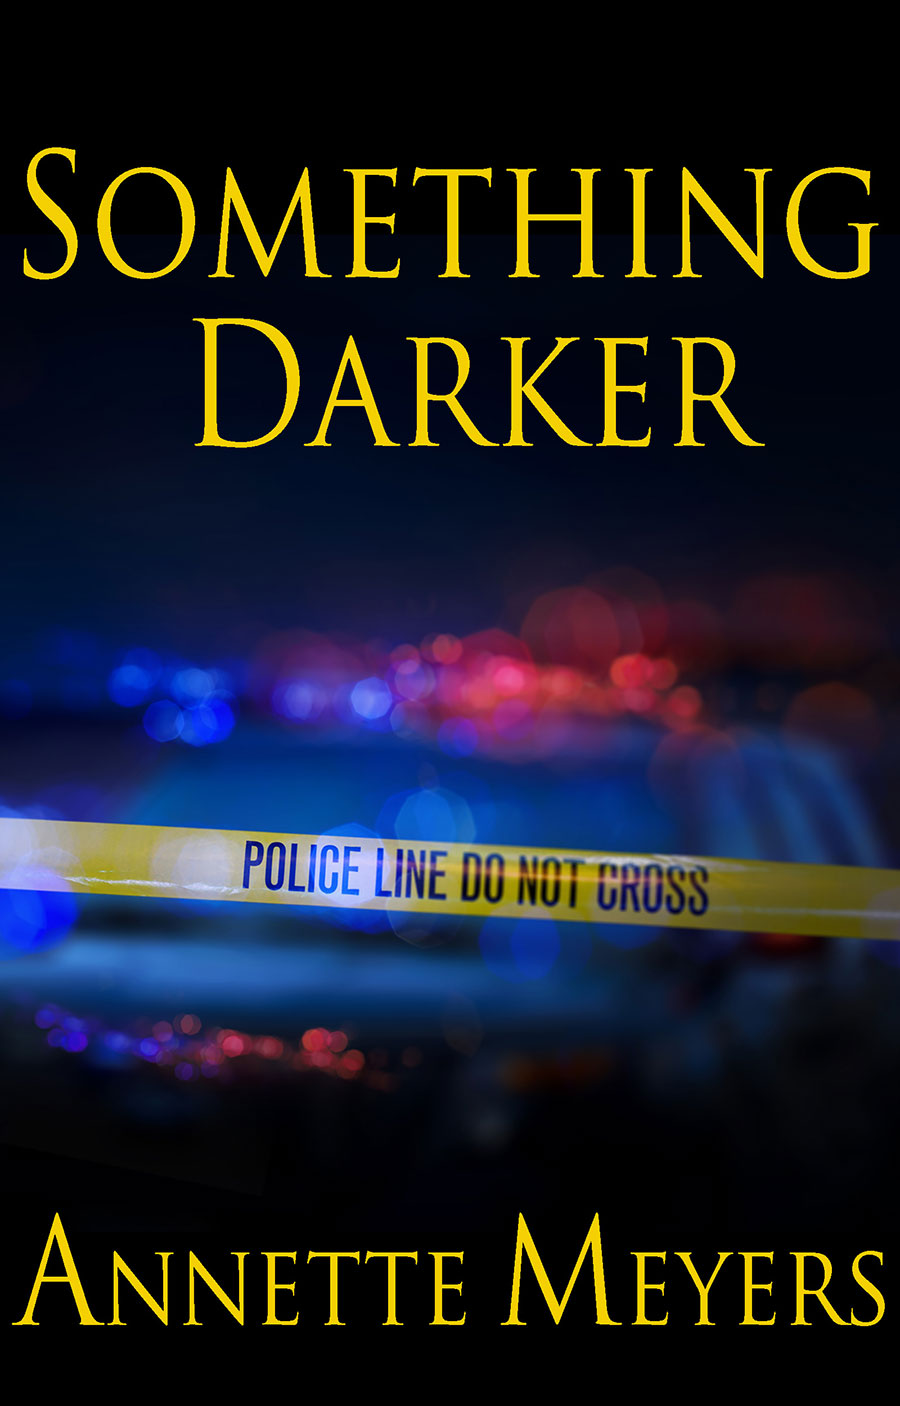 Something Darker - Annette Meyers